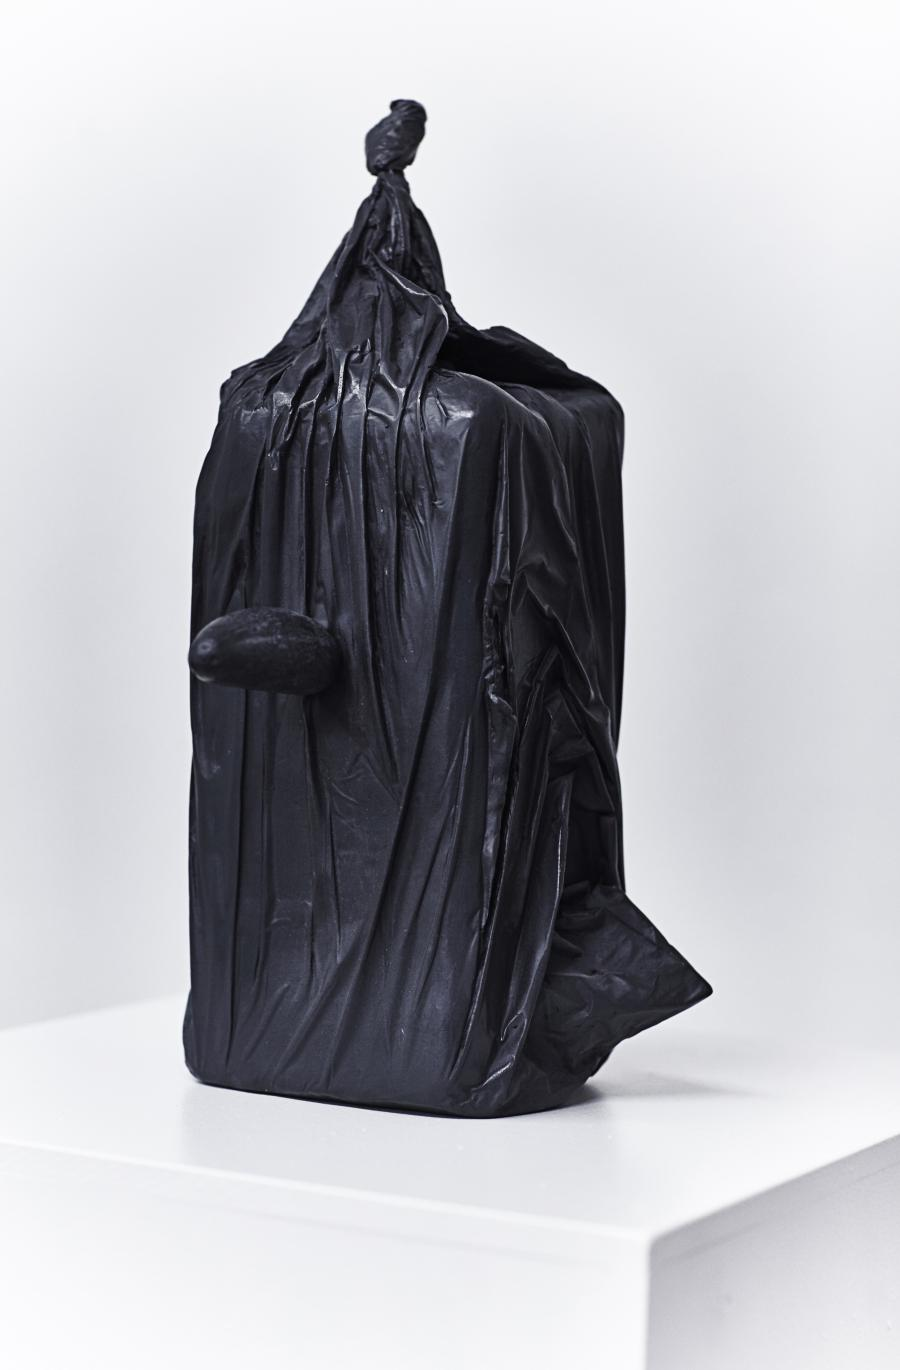 Erwin Wurm | Bad Thoughts VI | 2016 | Bronze patiniert | 42 x 26 x 23 cm | Ed. 2/2 (2 Ed.   2 AP)